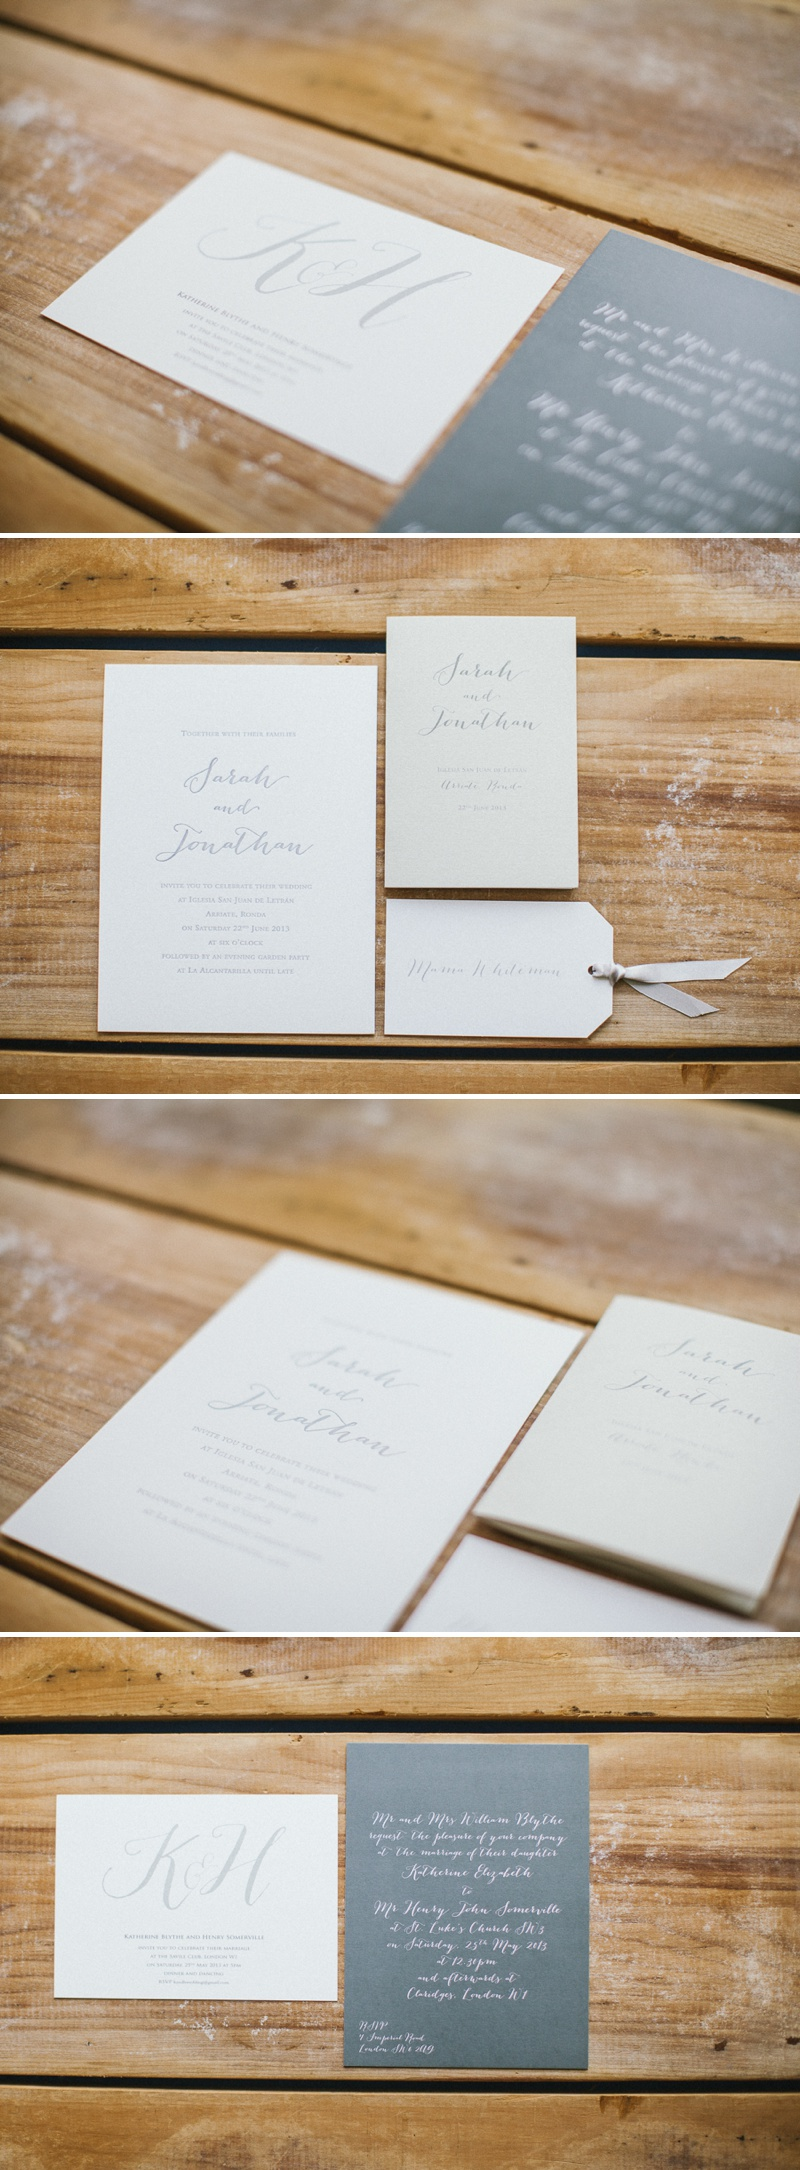 CLD Stationery Letterpressed Grey and Cream Colour Scheme Wedding Invitation